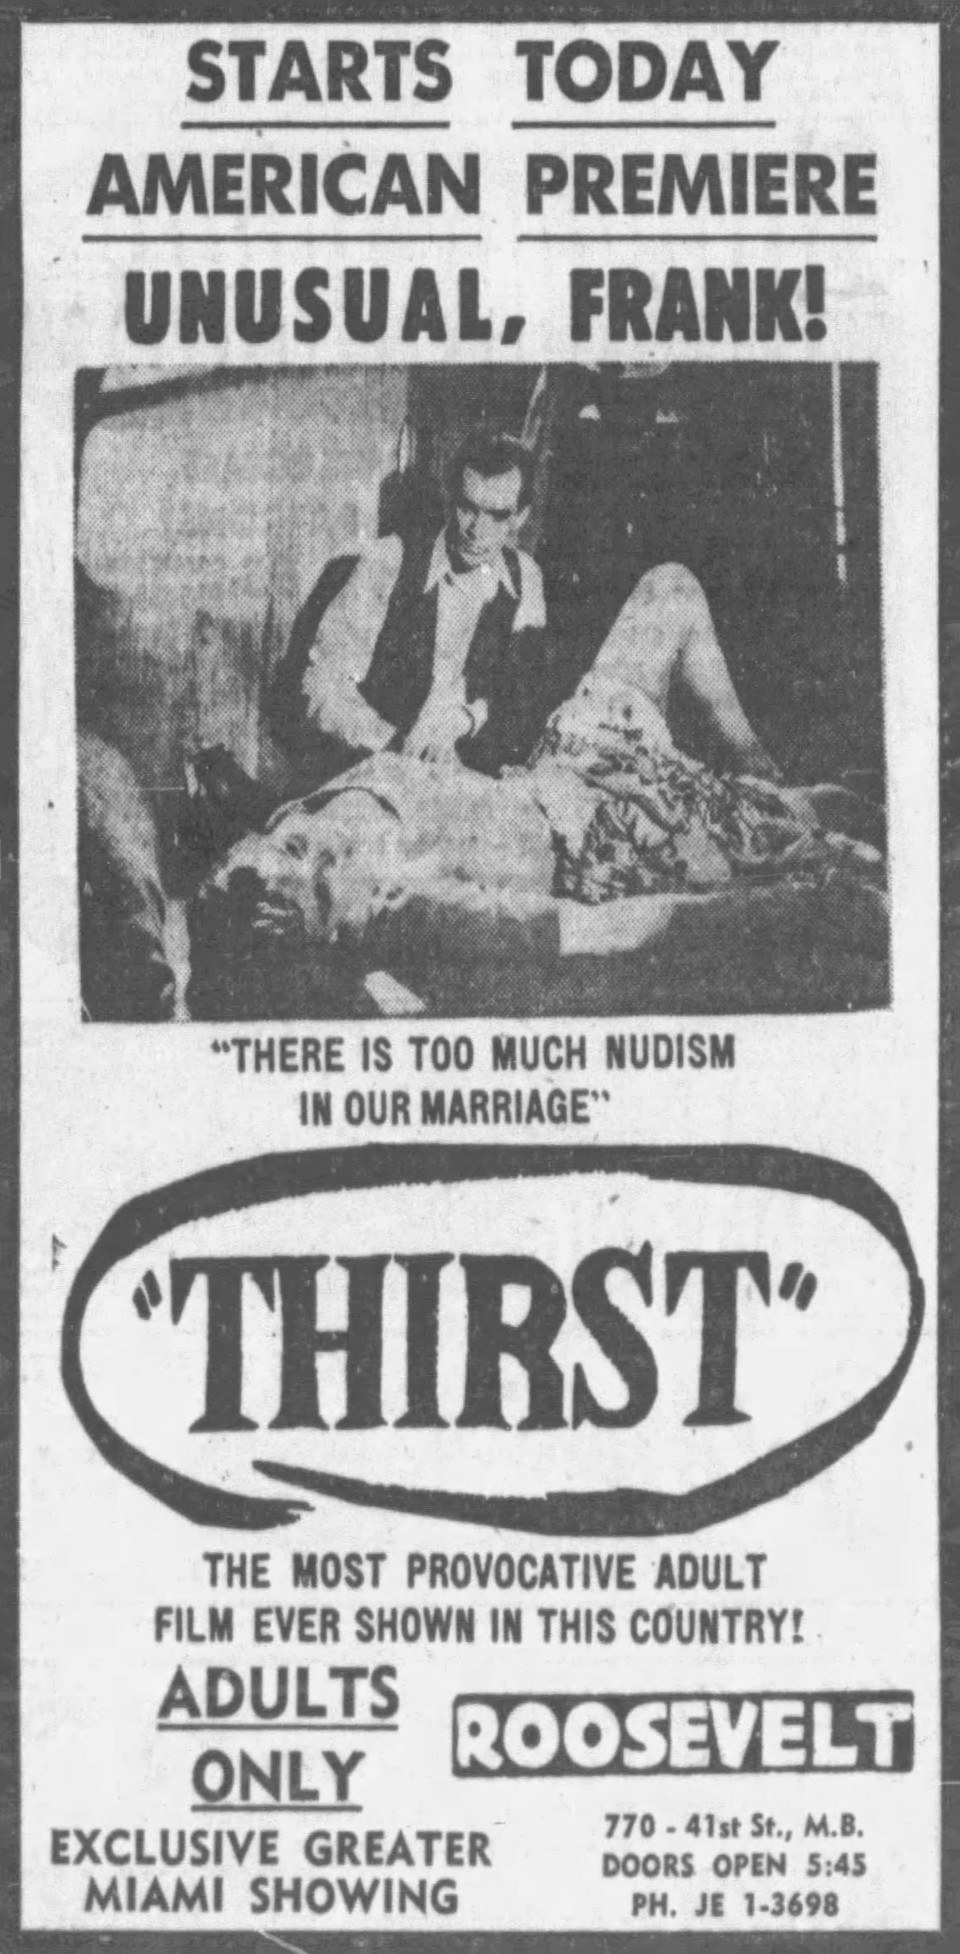 09-1955-08-26 - Thirst-Miami News